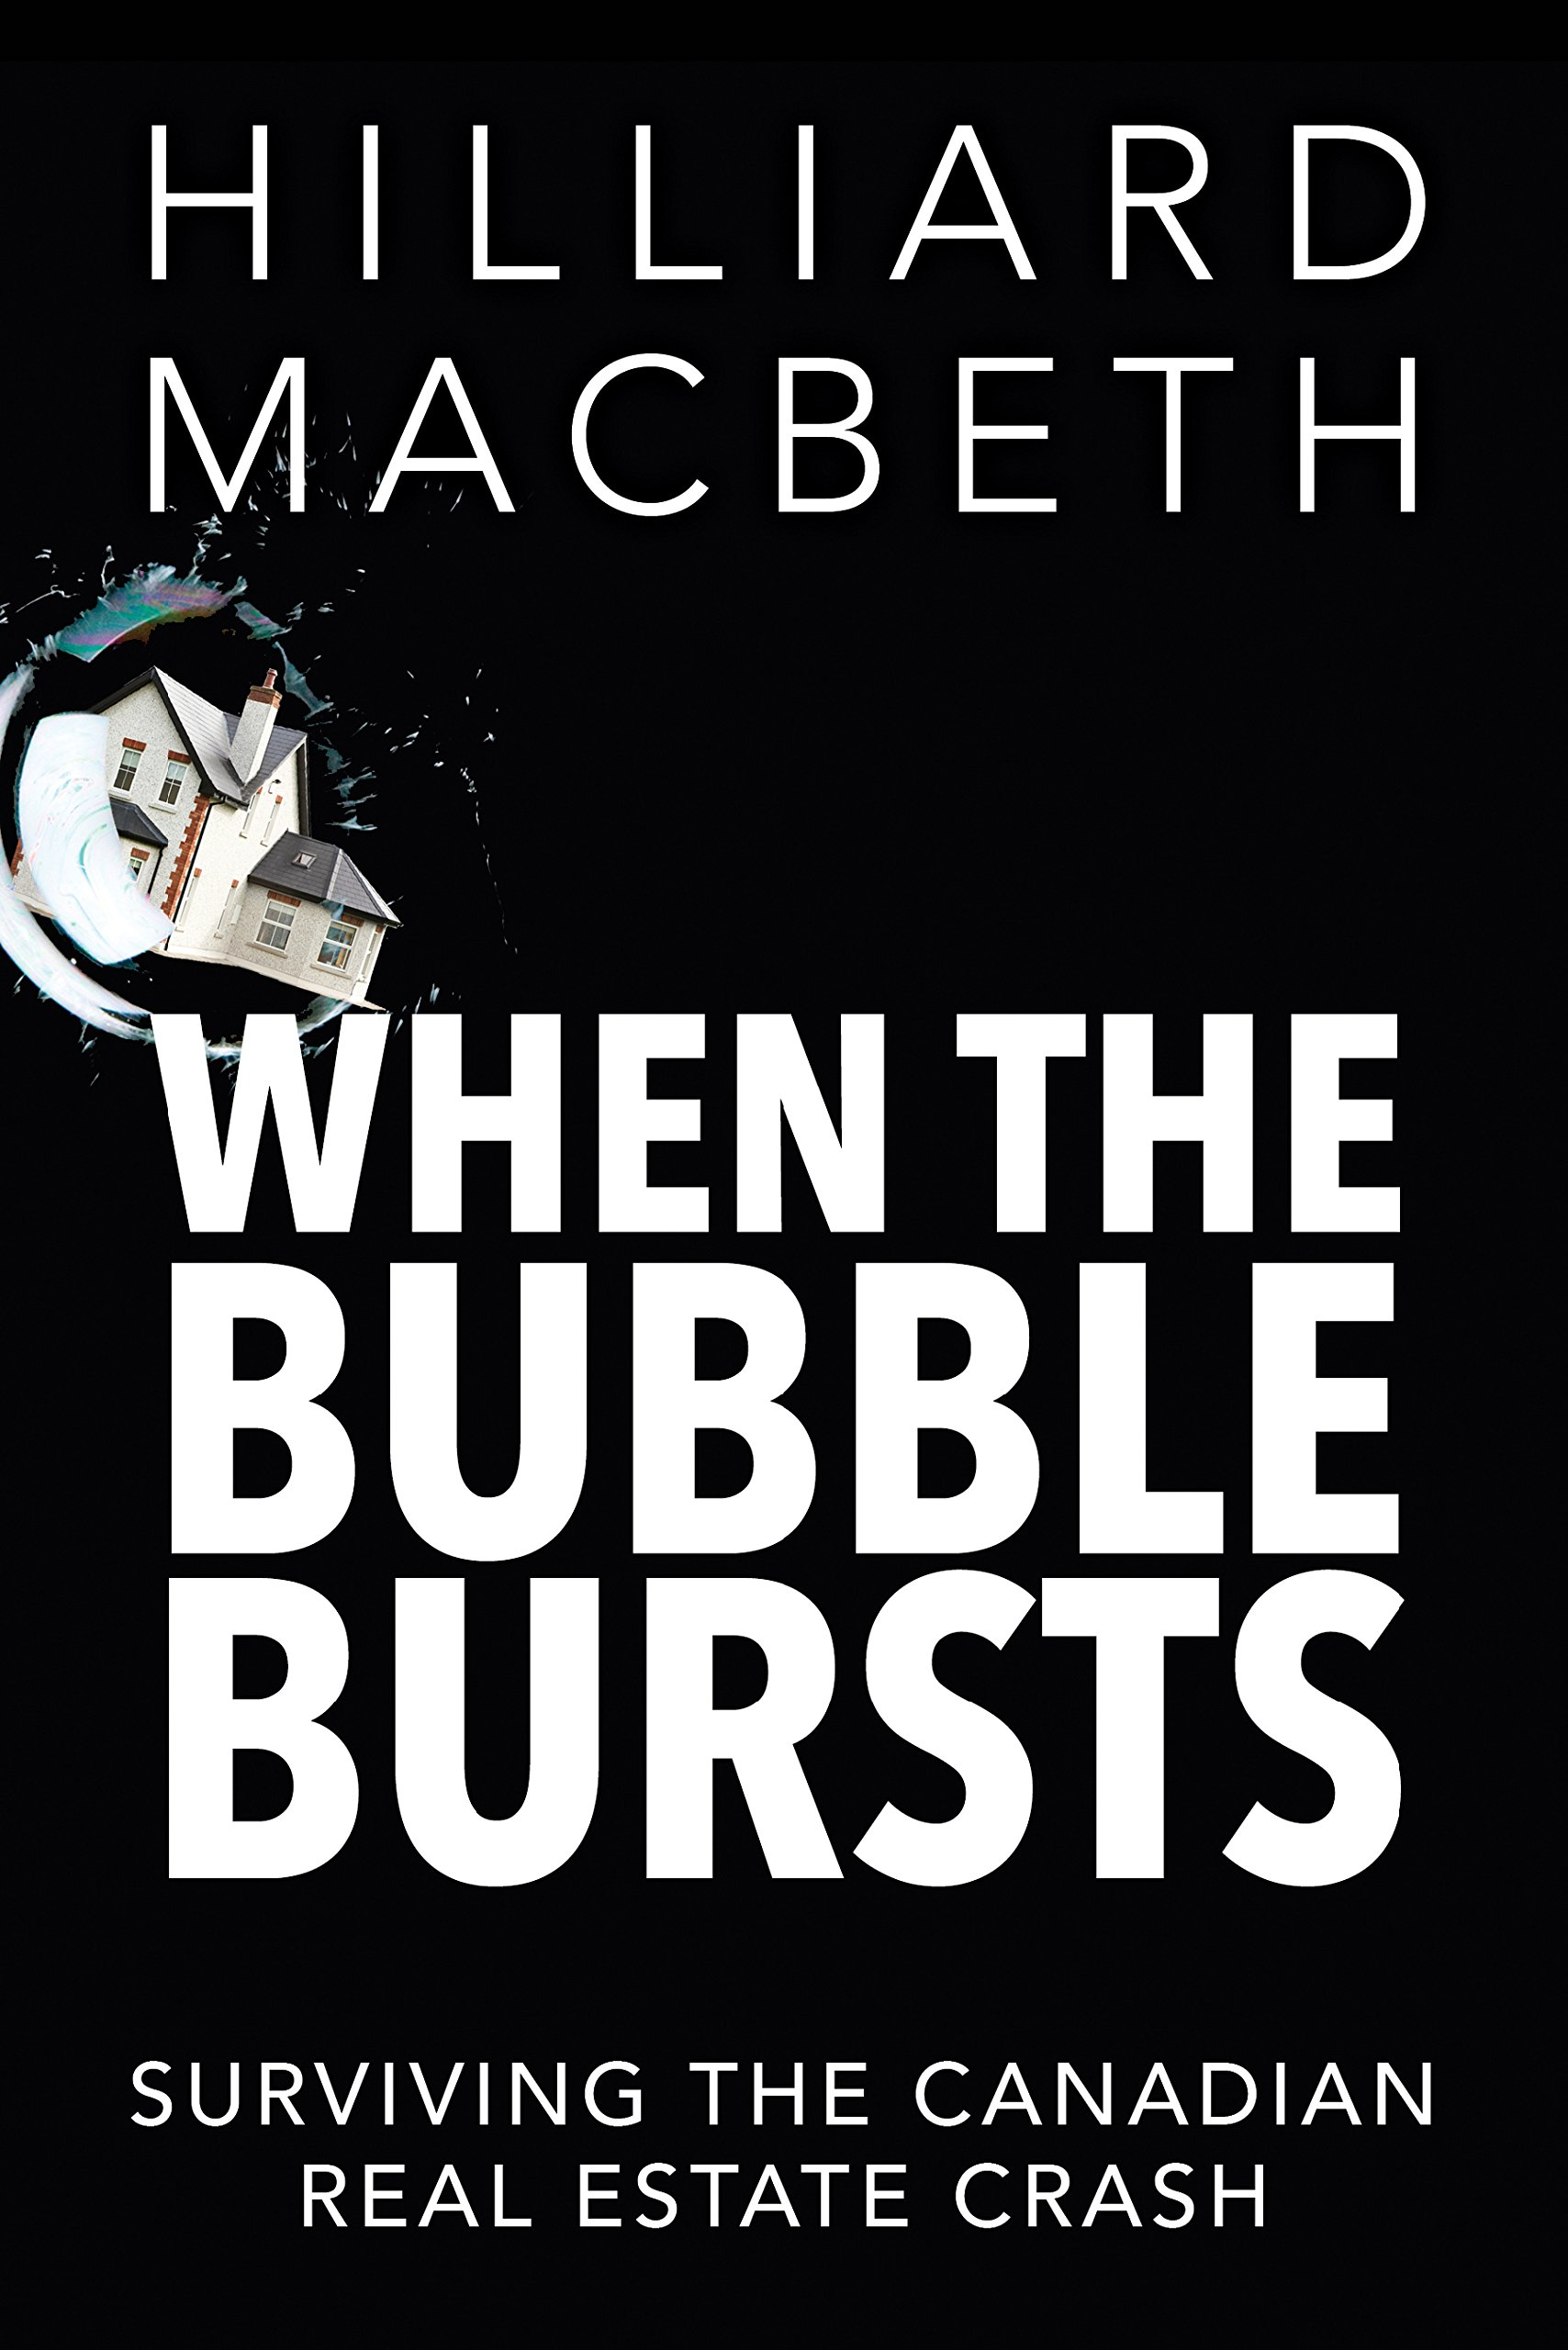 When the bubble bursts surviving the canadian real estate crash when the bubble bursts surviving the canadian real estate crash hilliard macbeth 9781459729803 books amazon thecheapjerseys Image collections